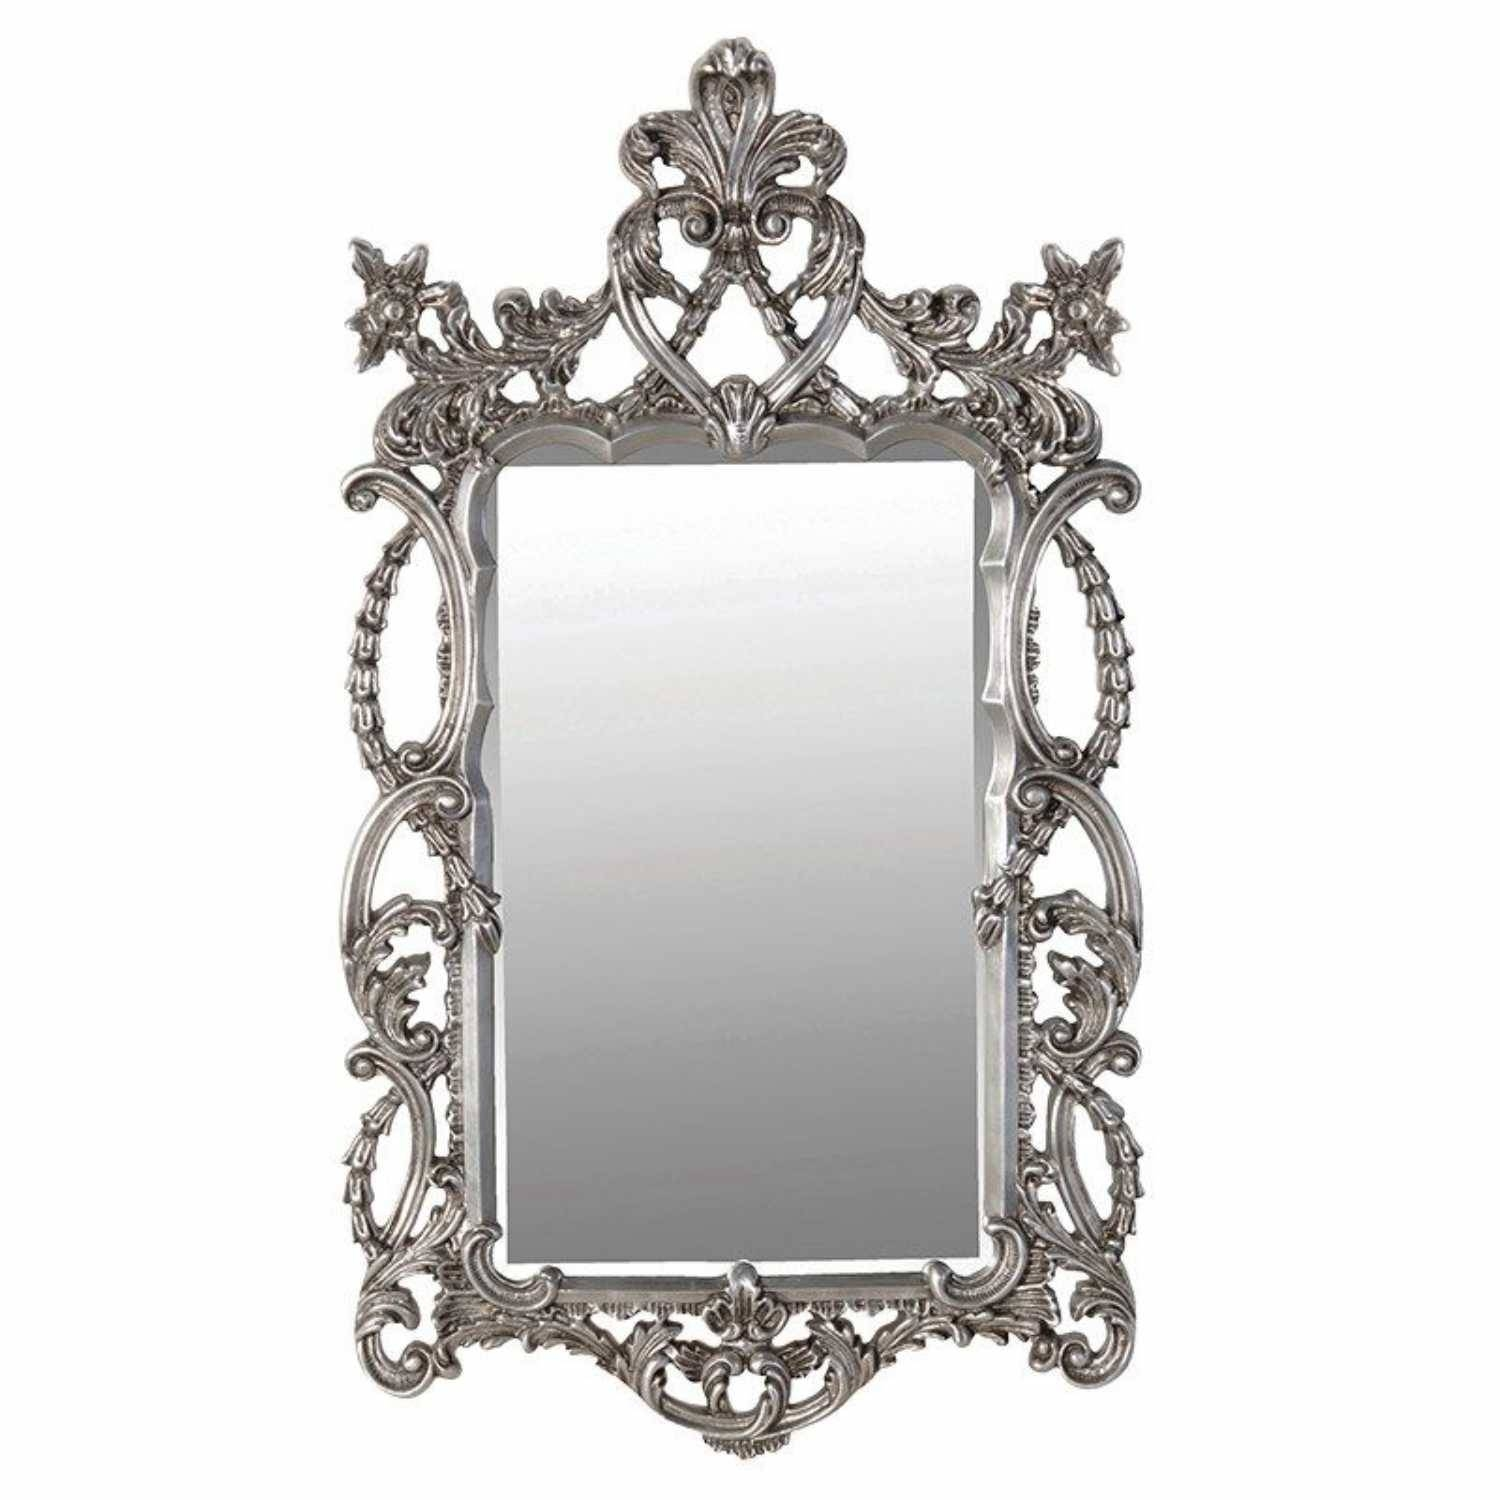 Large Shabby Chic Ornate Silver Effect Painted Baroque Wall Mirror with Ornate Silver Mirrors (Image 9 of 25)